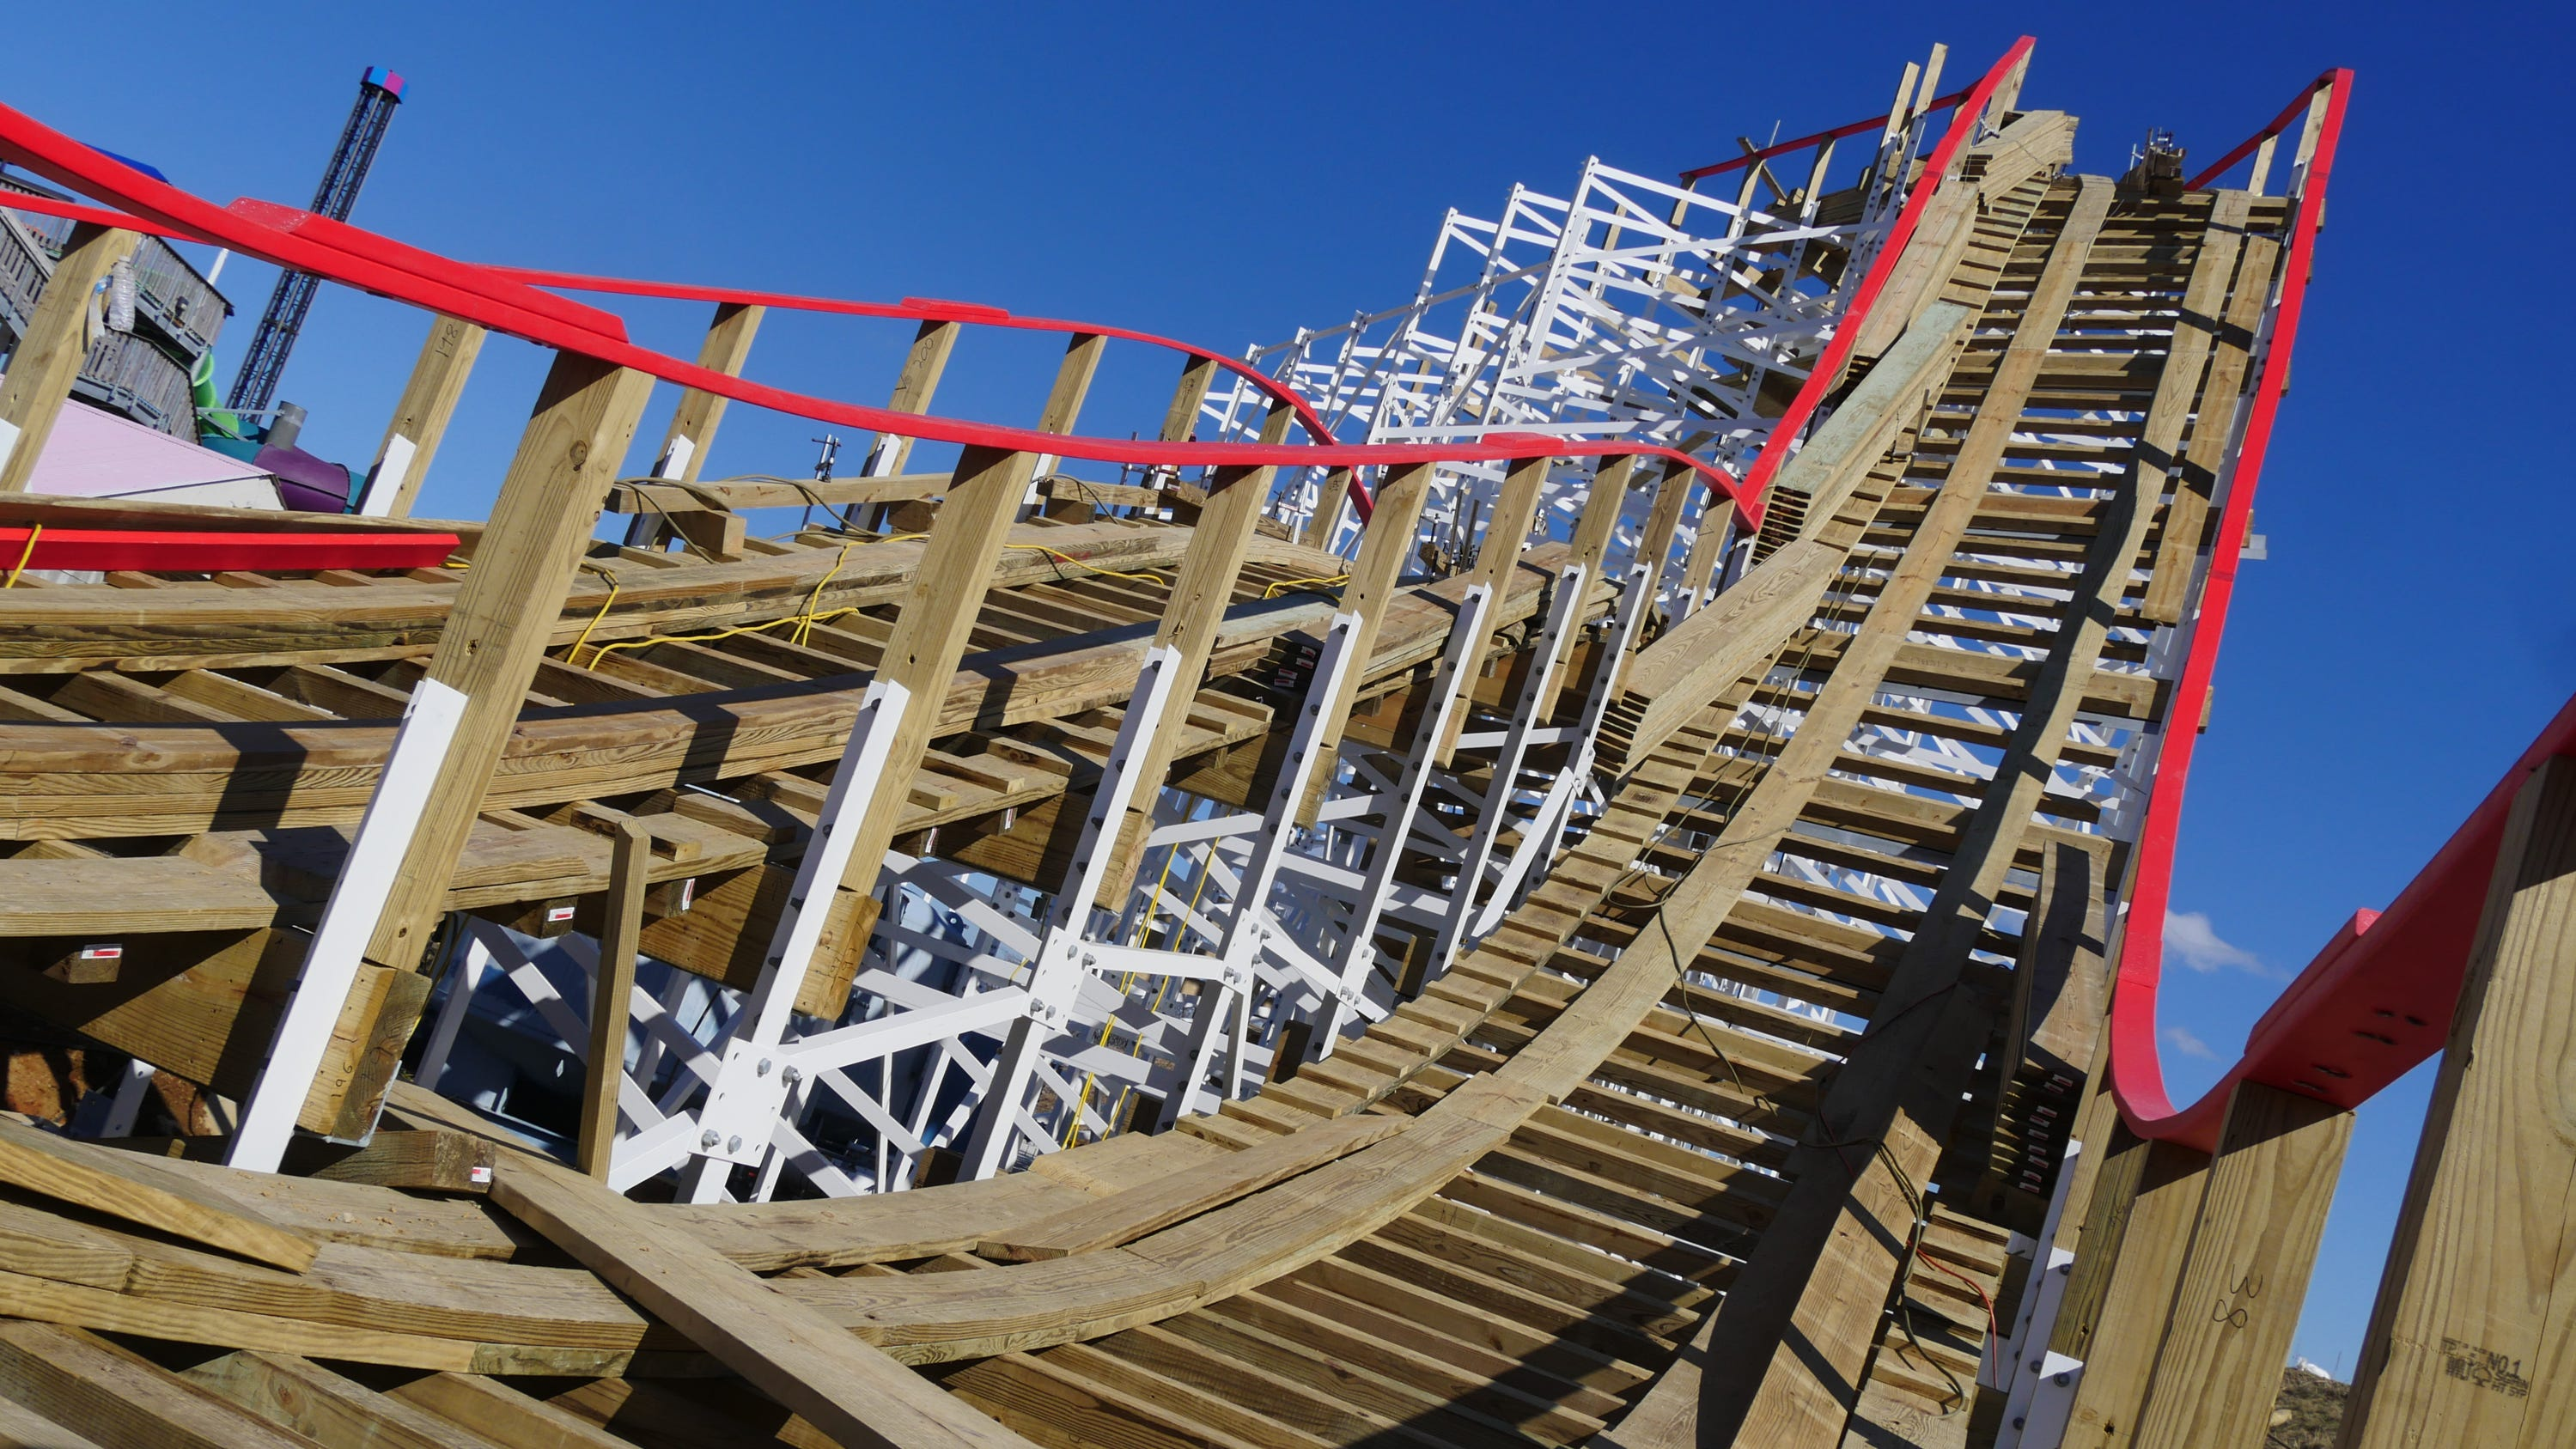 Best deals when going to nearby theme parks, Dollywood, Six Flags, Kentucky Kingdom, Holiday World and more